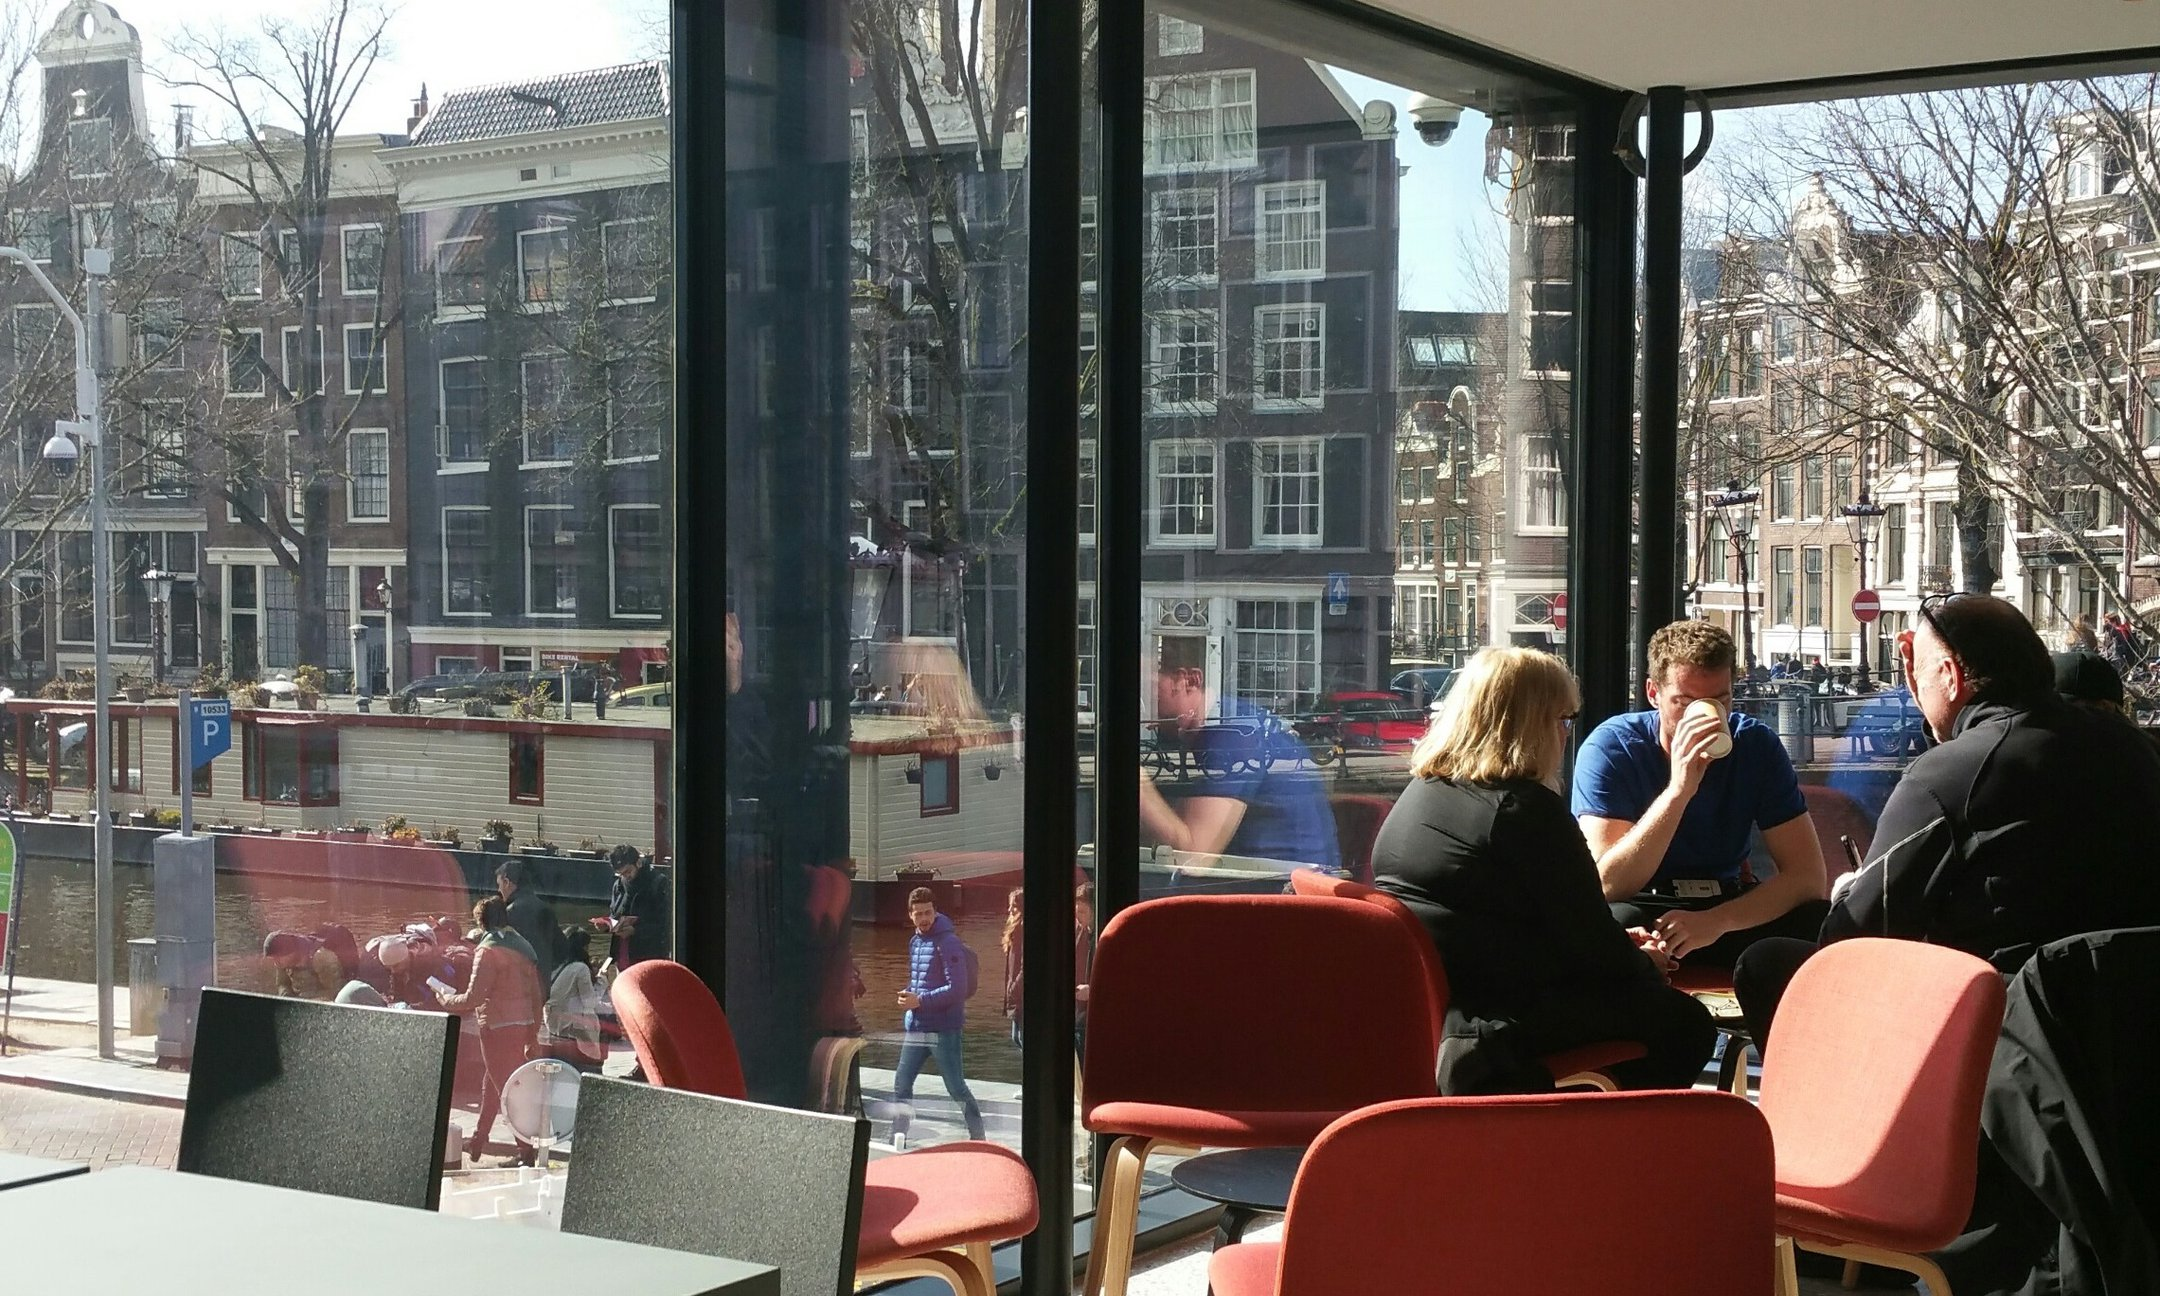 The museum cafe at the Anne Frank House